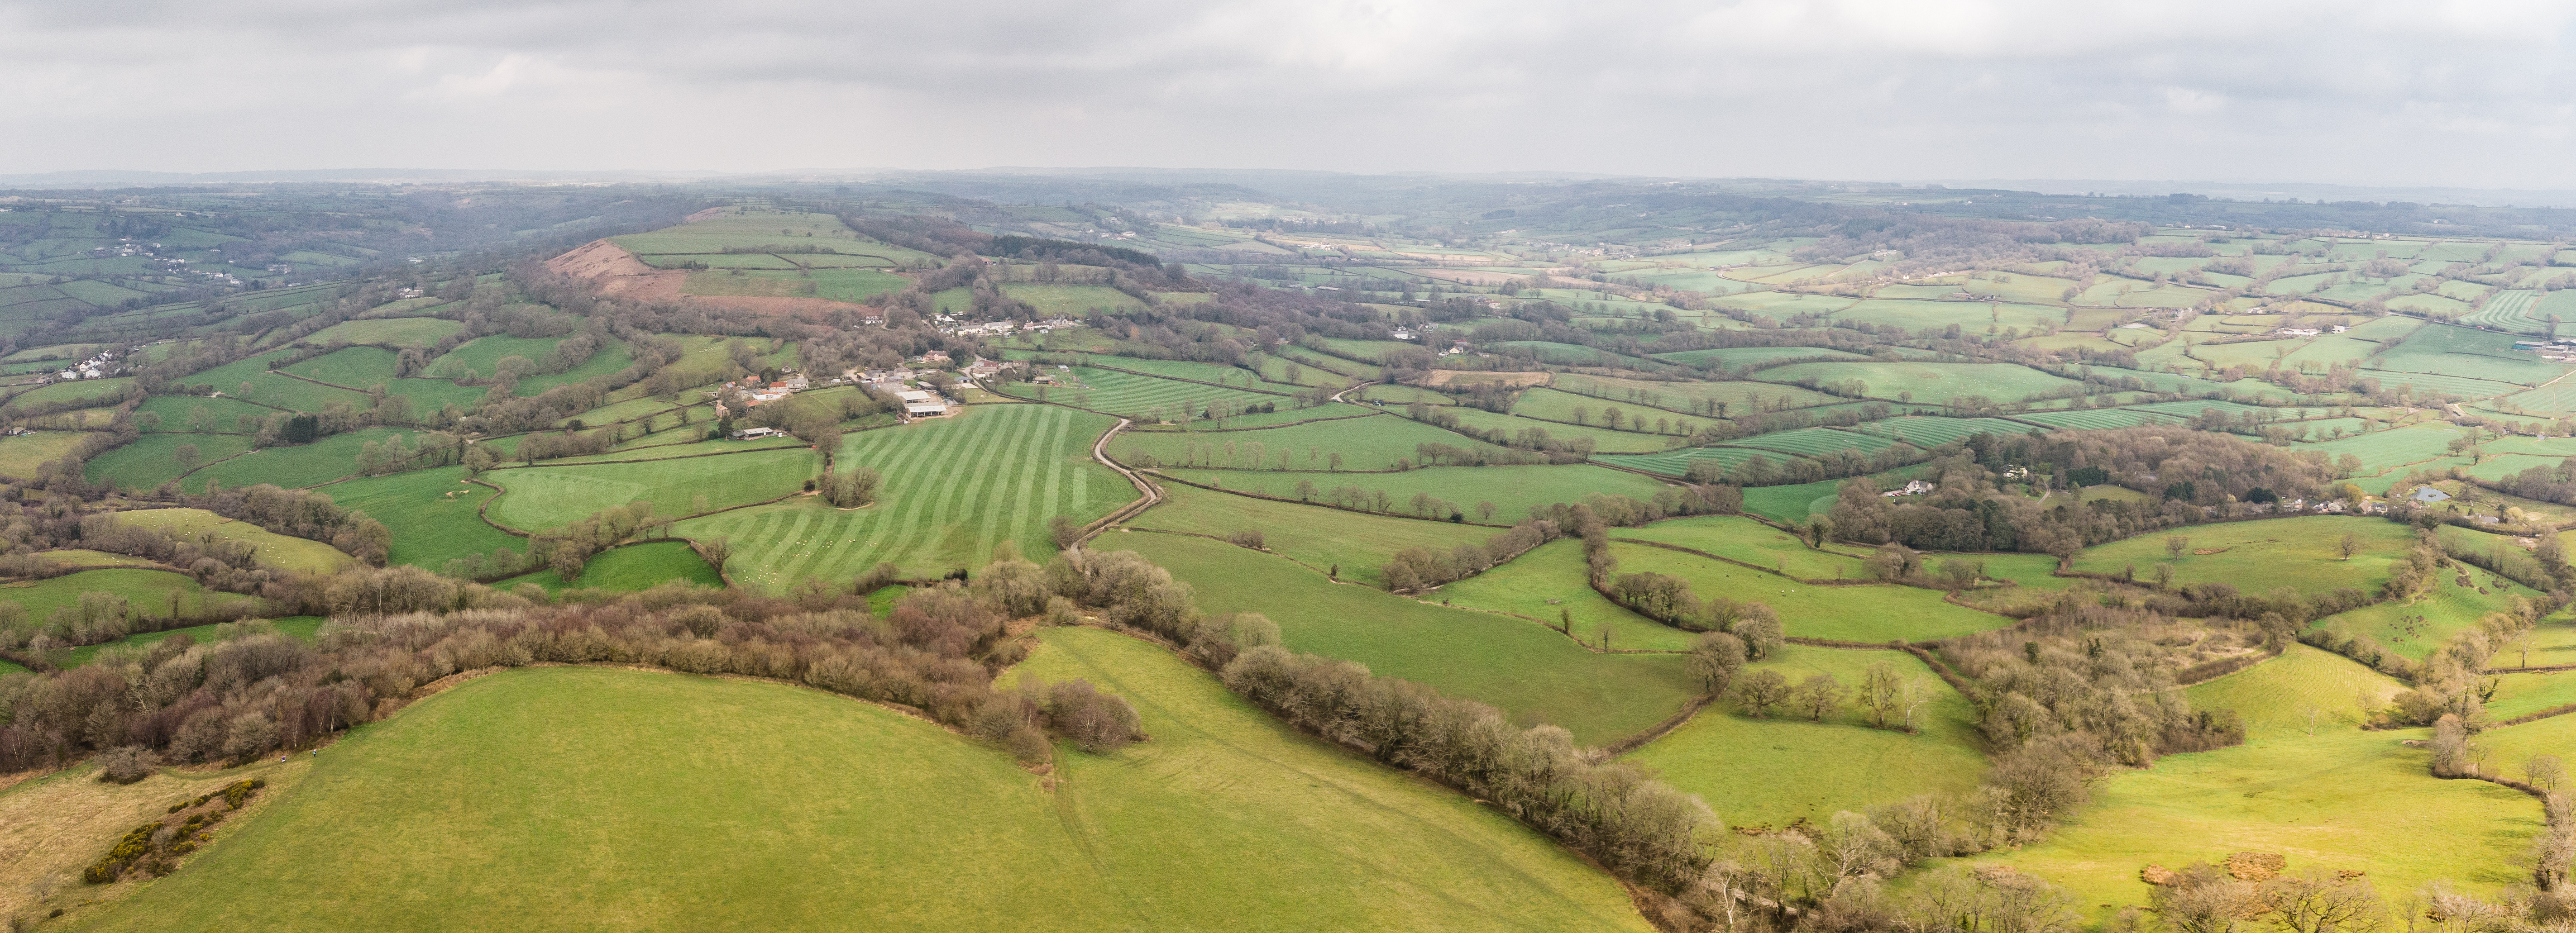 Aerial view north from Dumpdon Hill showing the field patterns and hedgerows